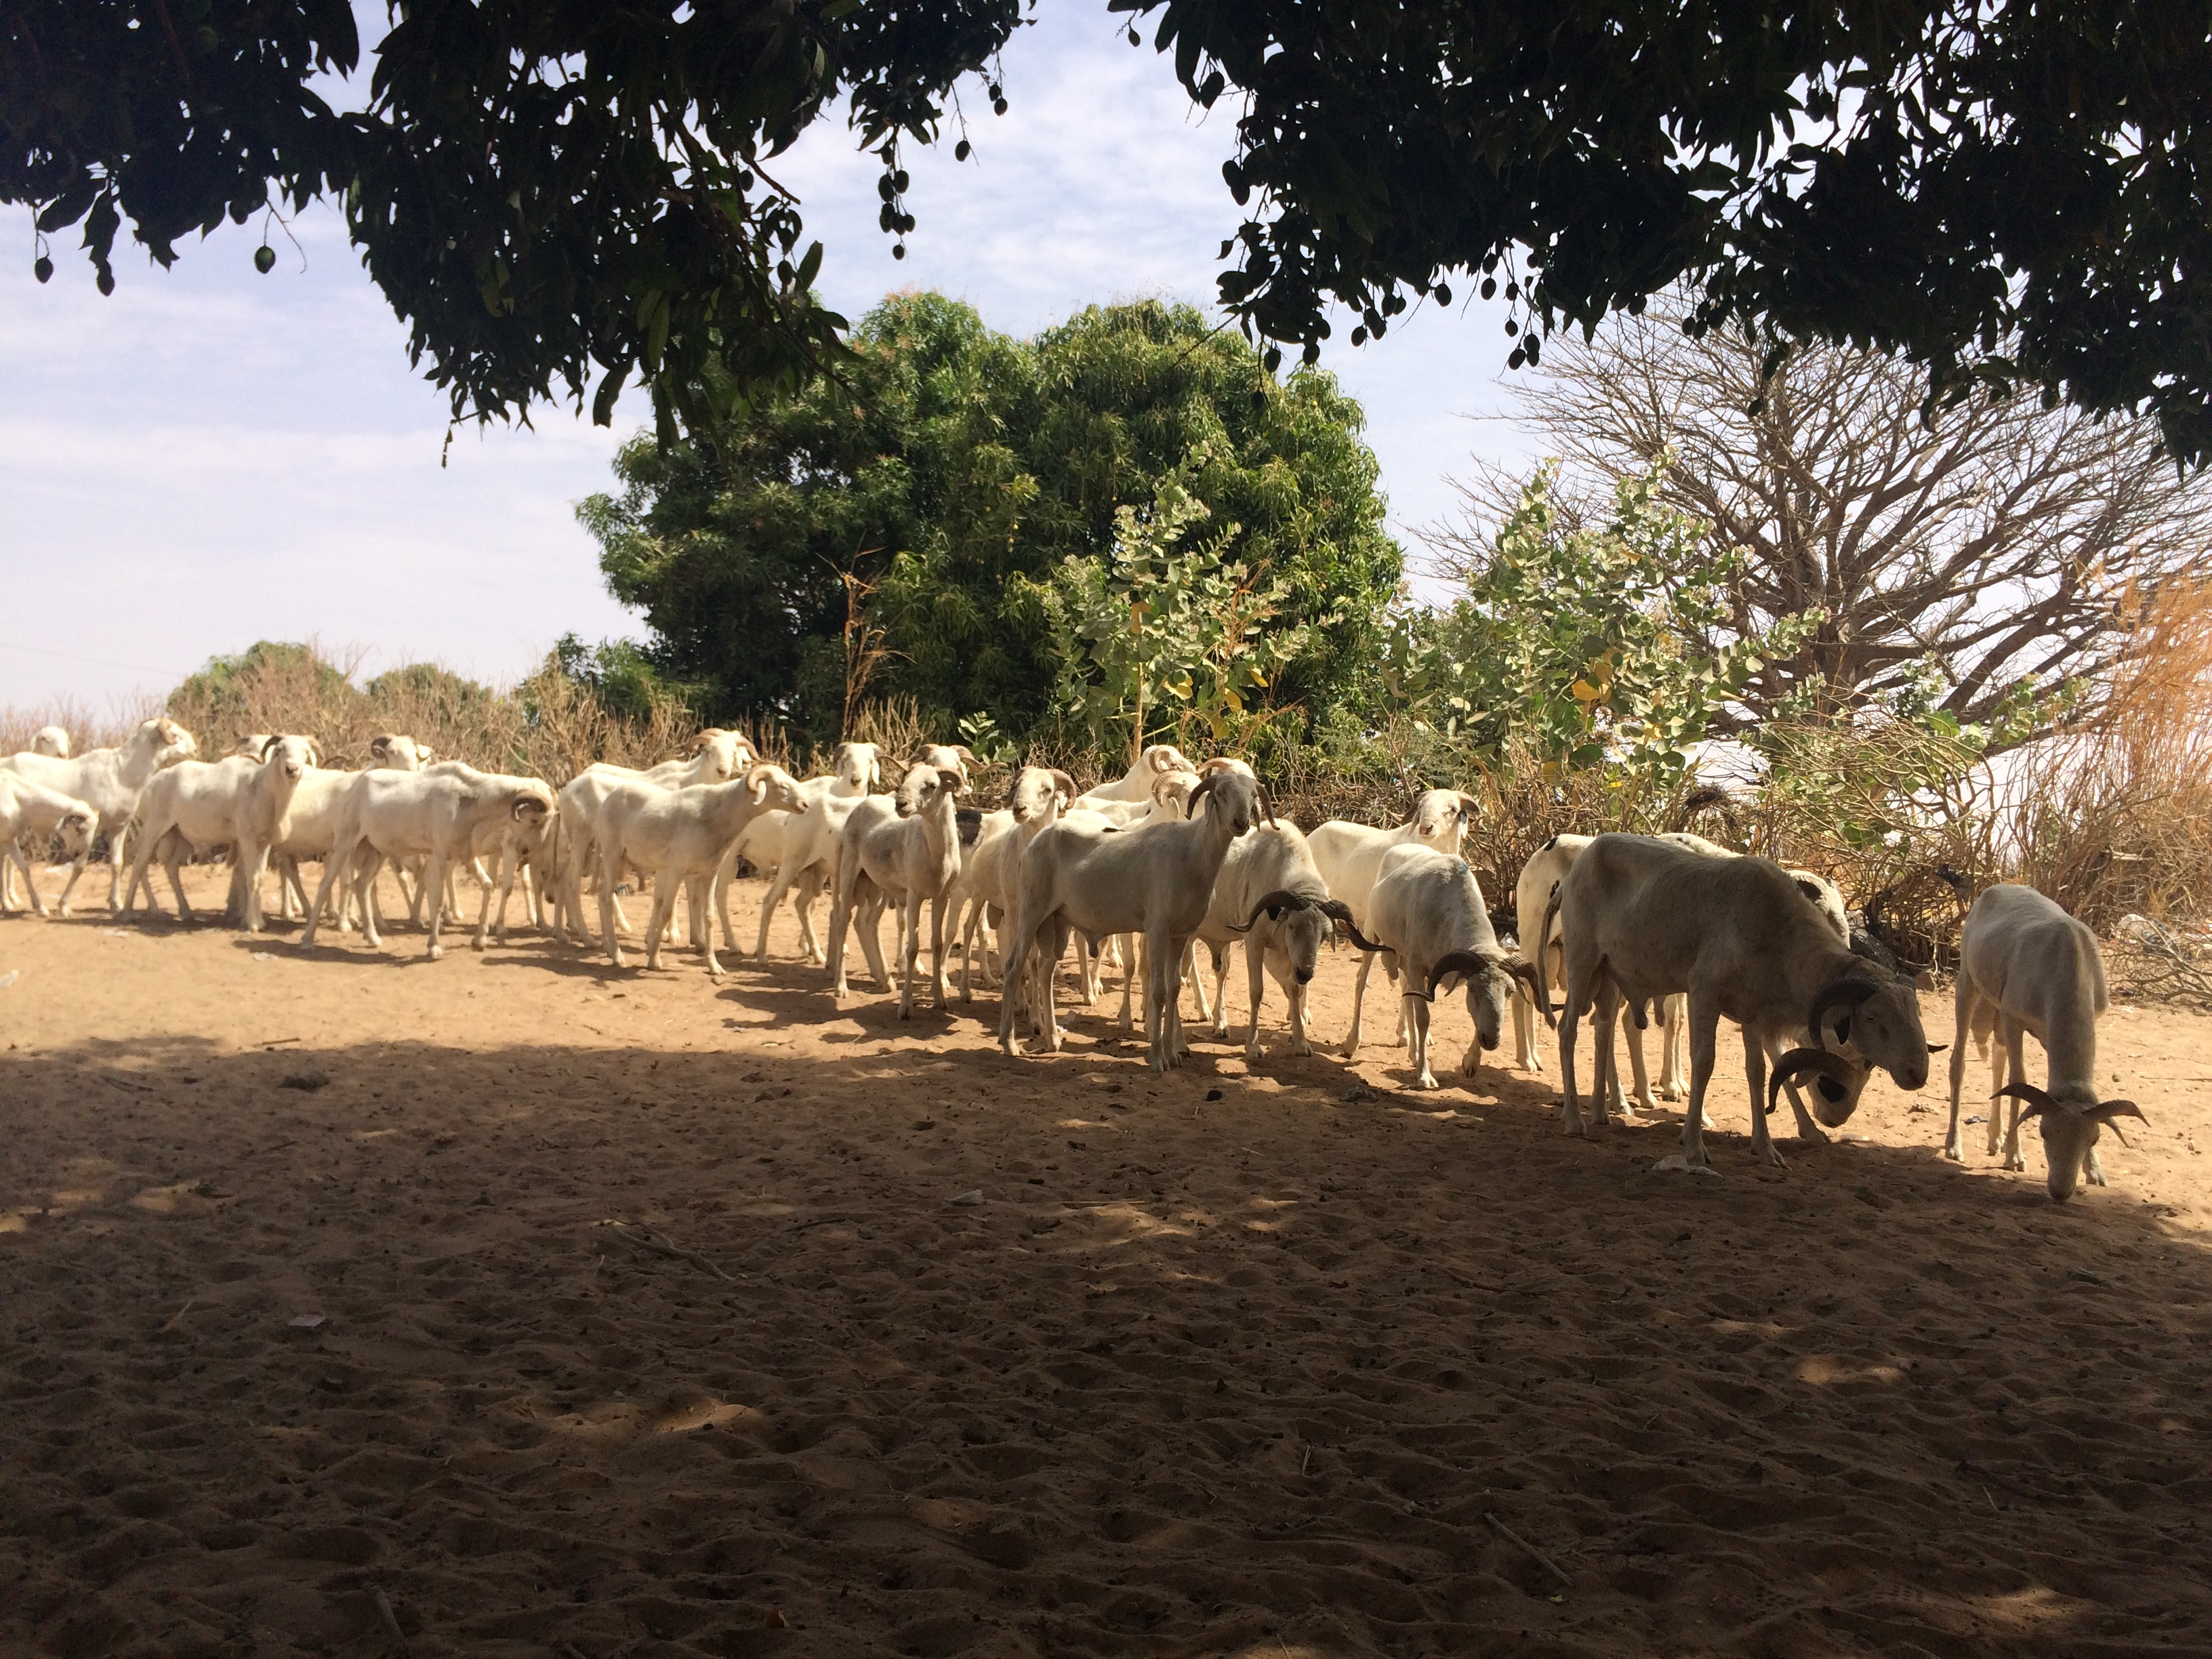 7 'THINGS' I'LL MISS ABOUT SENEGAL